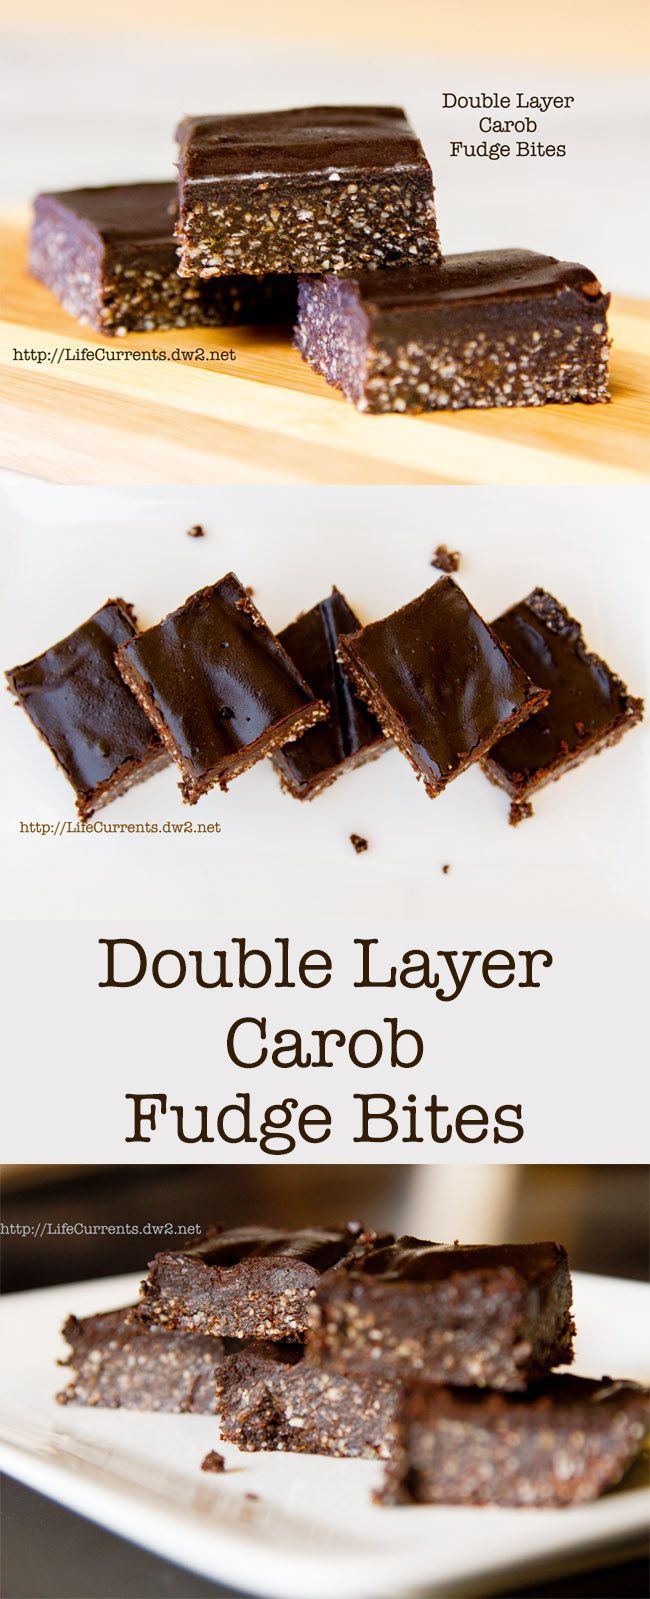 Double Layer Carob Fudge Bites --- These are a great healthy dessert snack item. Vegan, gluten-free, grain-free, paleo, no processed sugar, healthy fats from whole foods like nuts and coconut. Super tasty.